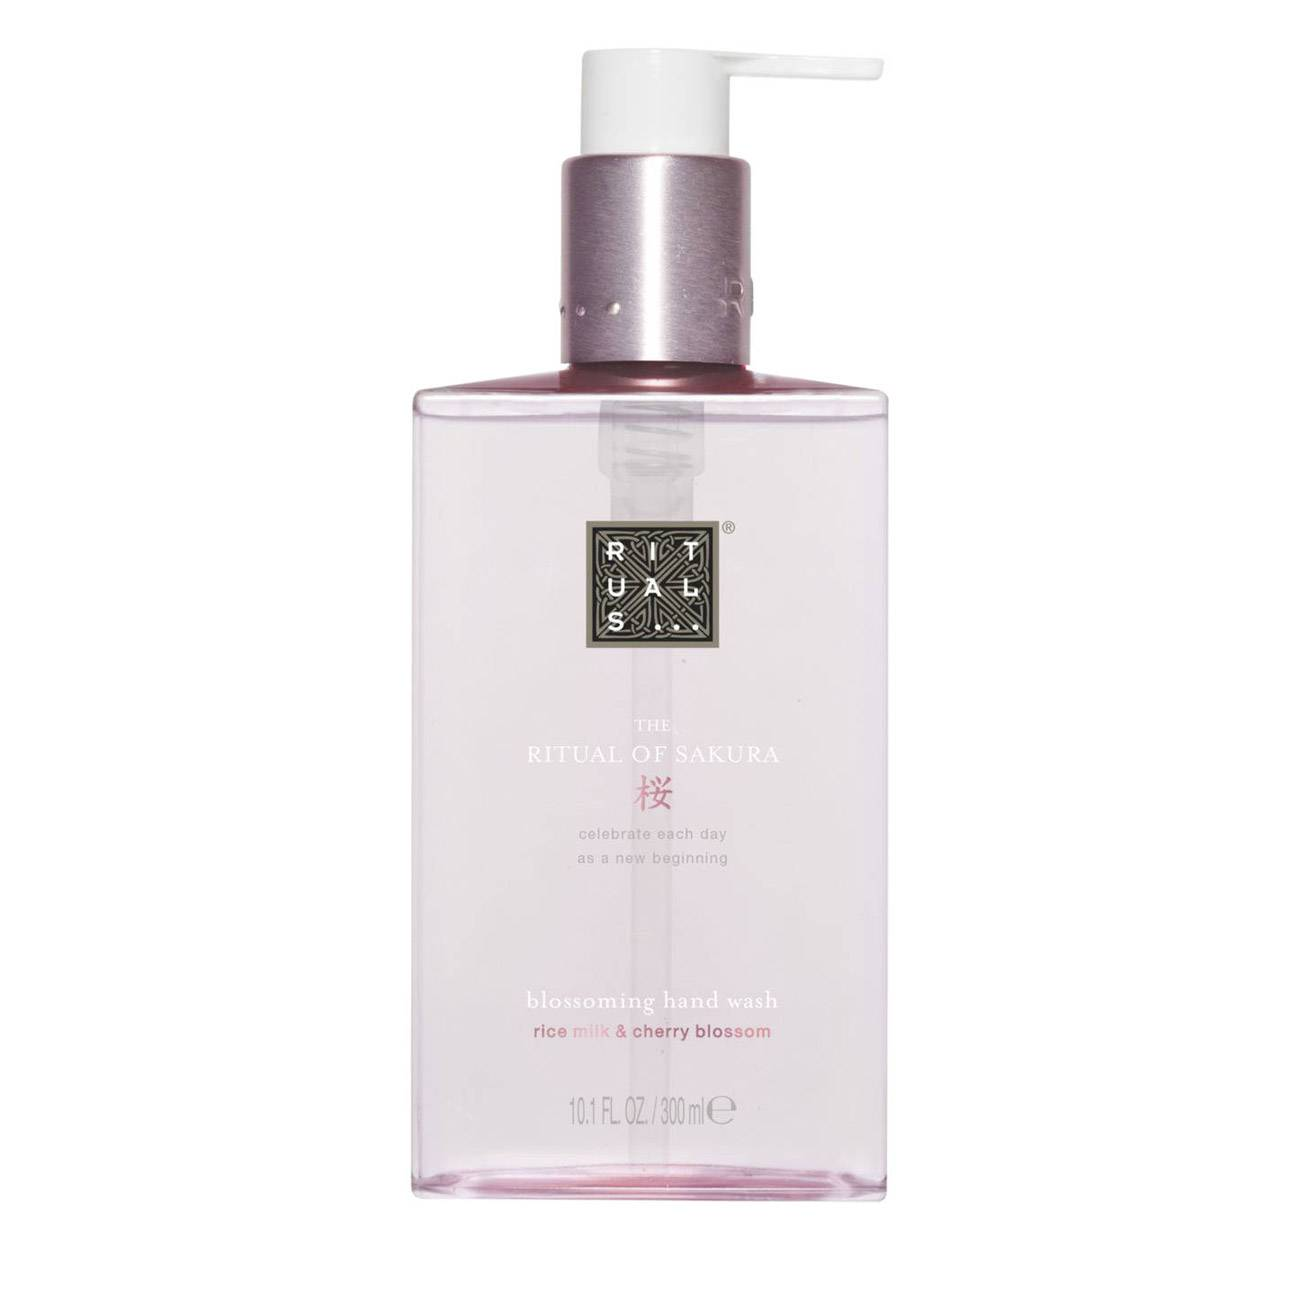 THE RITUAL OF SAKURA HAND WASH 300 Ml poza noua